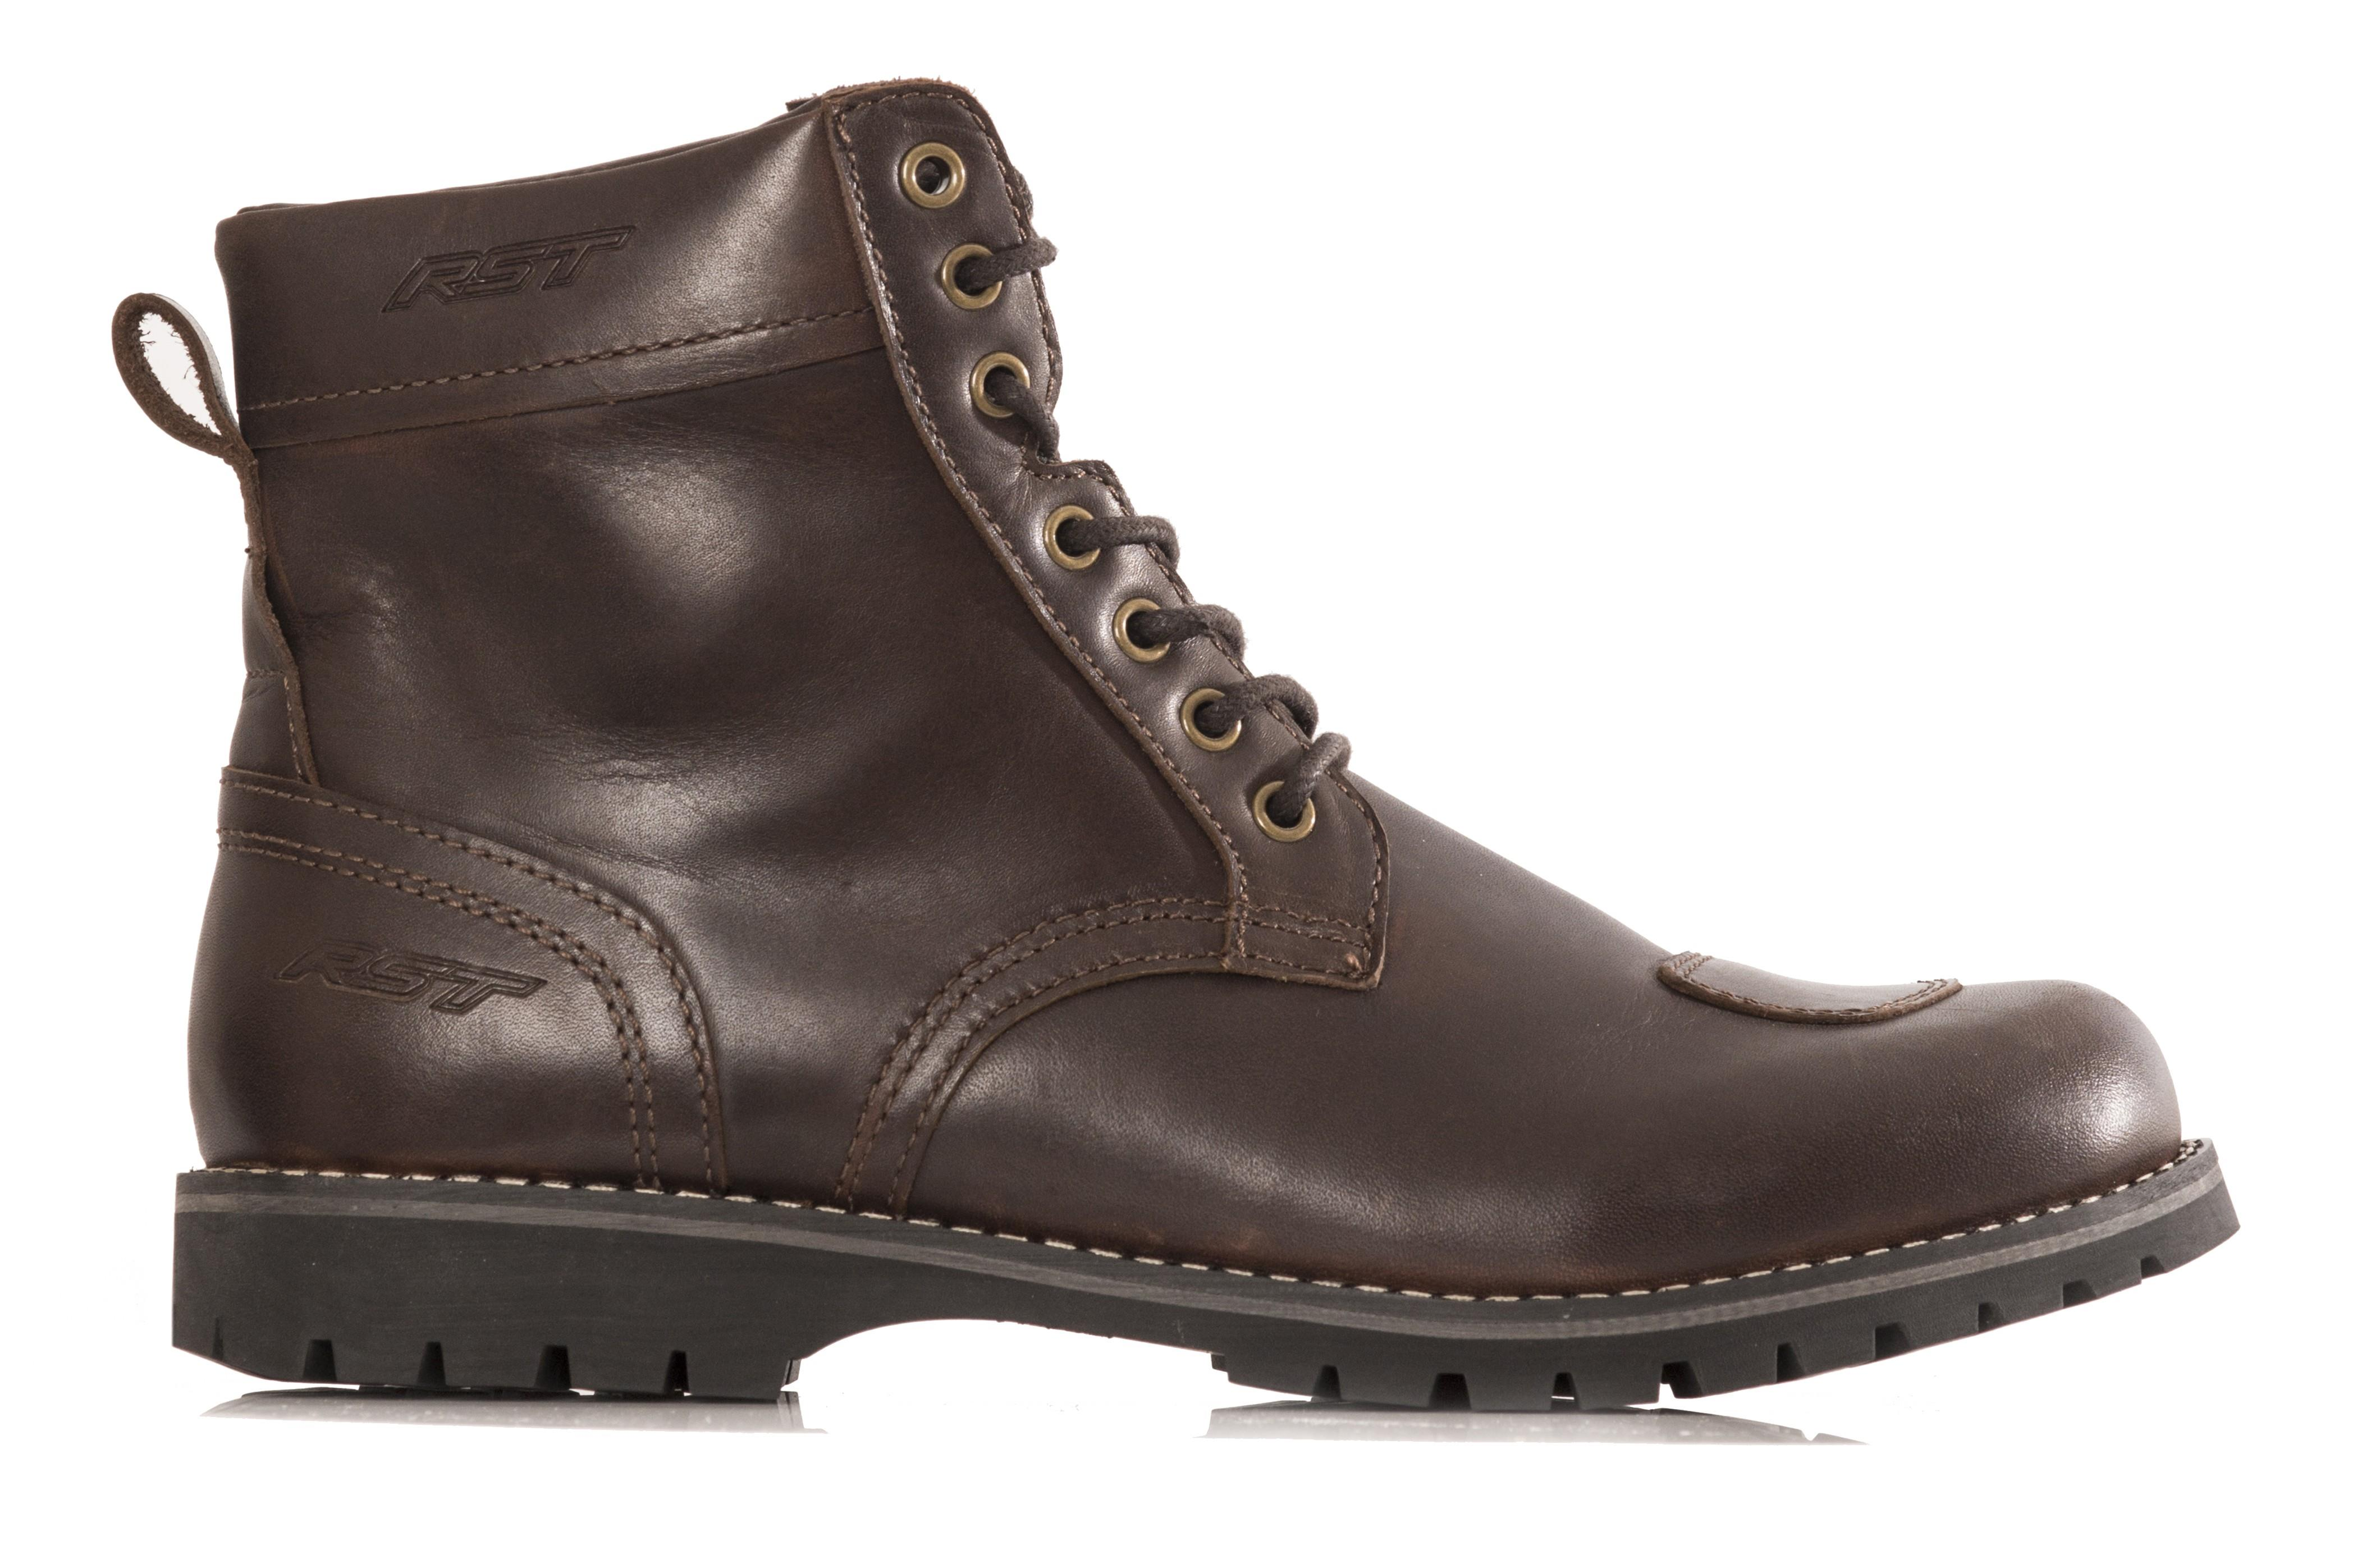 Clearance Rst Roadster Classic Boots Brown Online